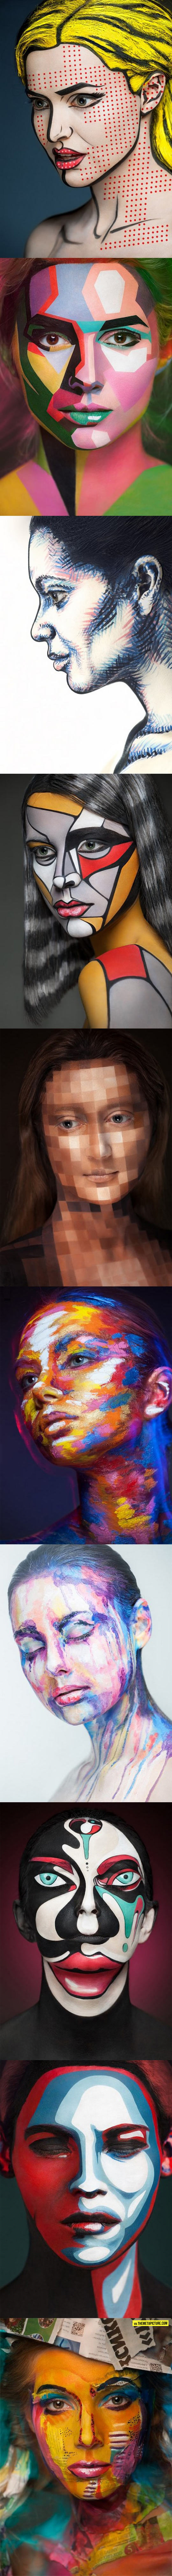 Faces Used As A Canvas